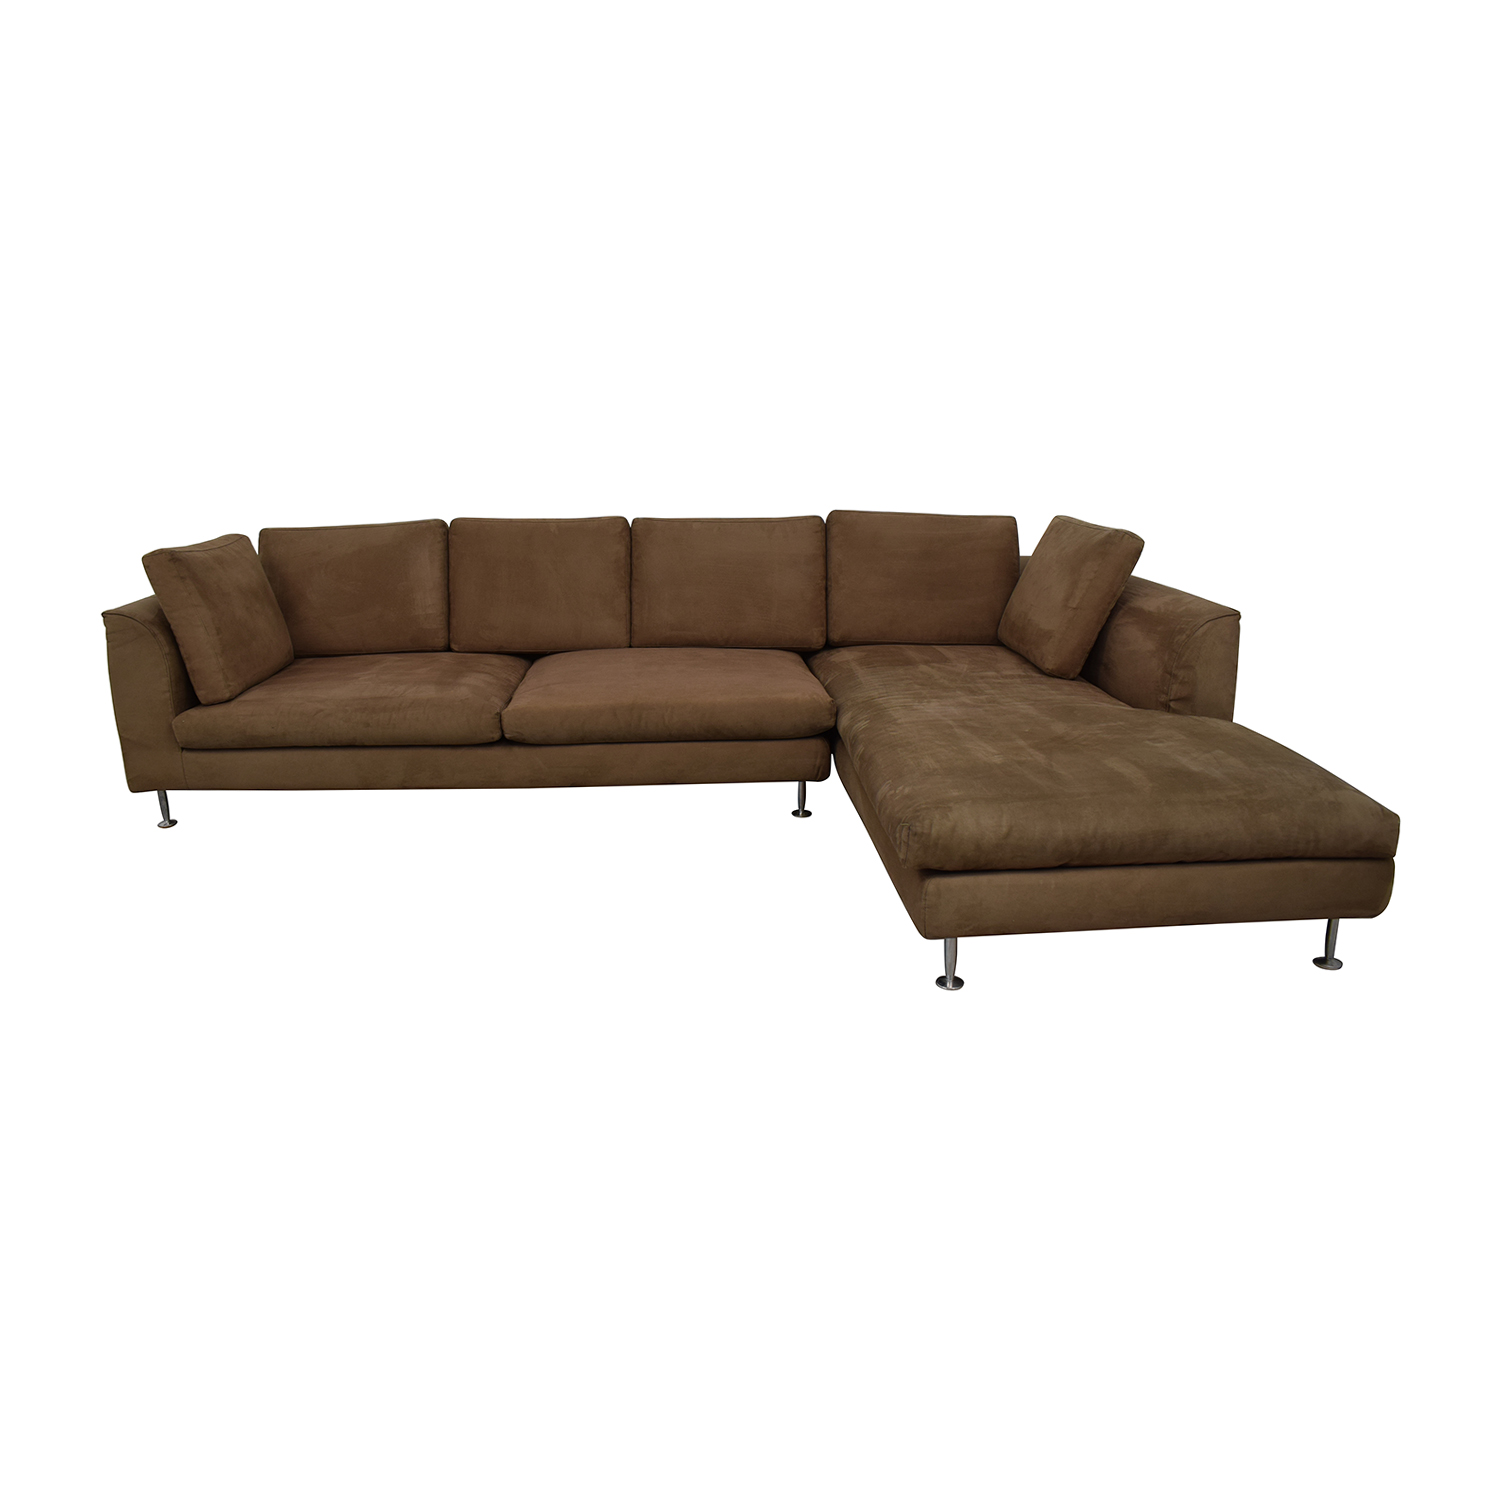 Brown Sectional Sofa With Chaise